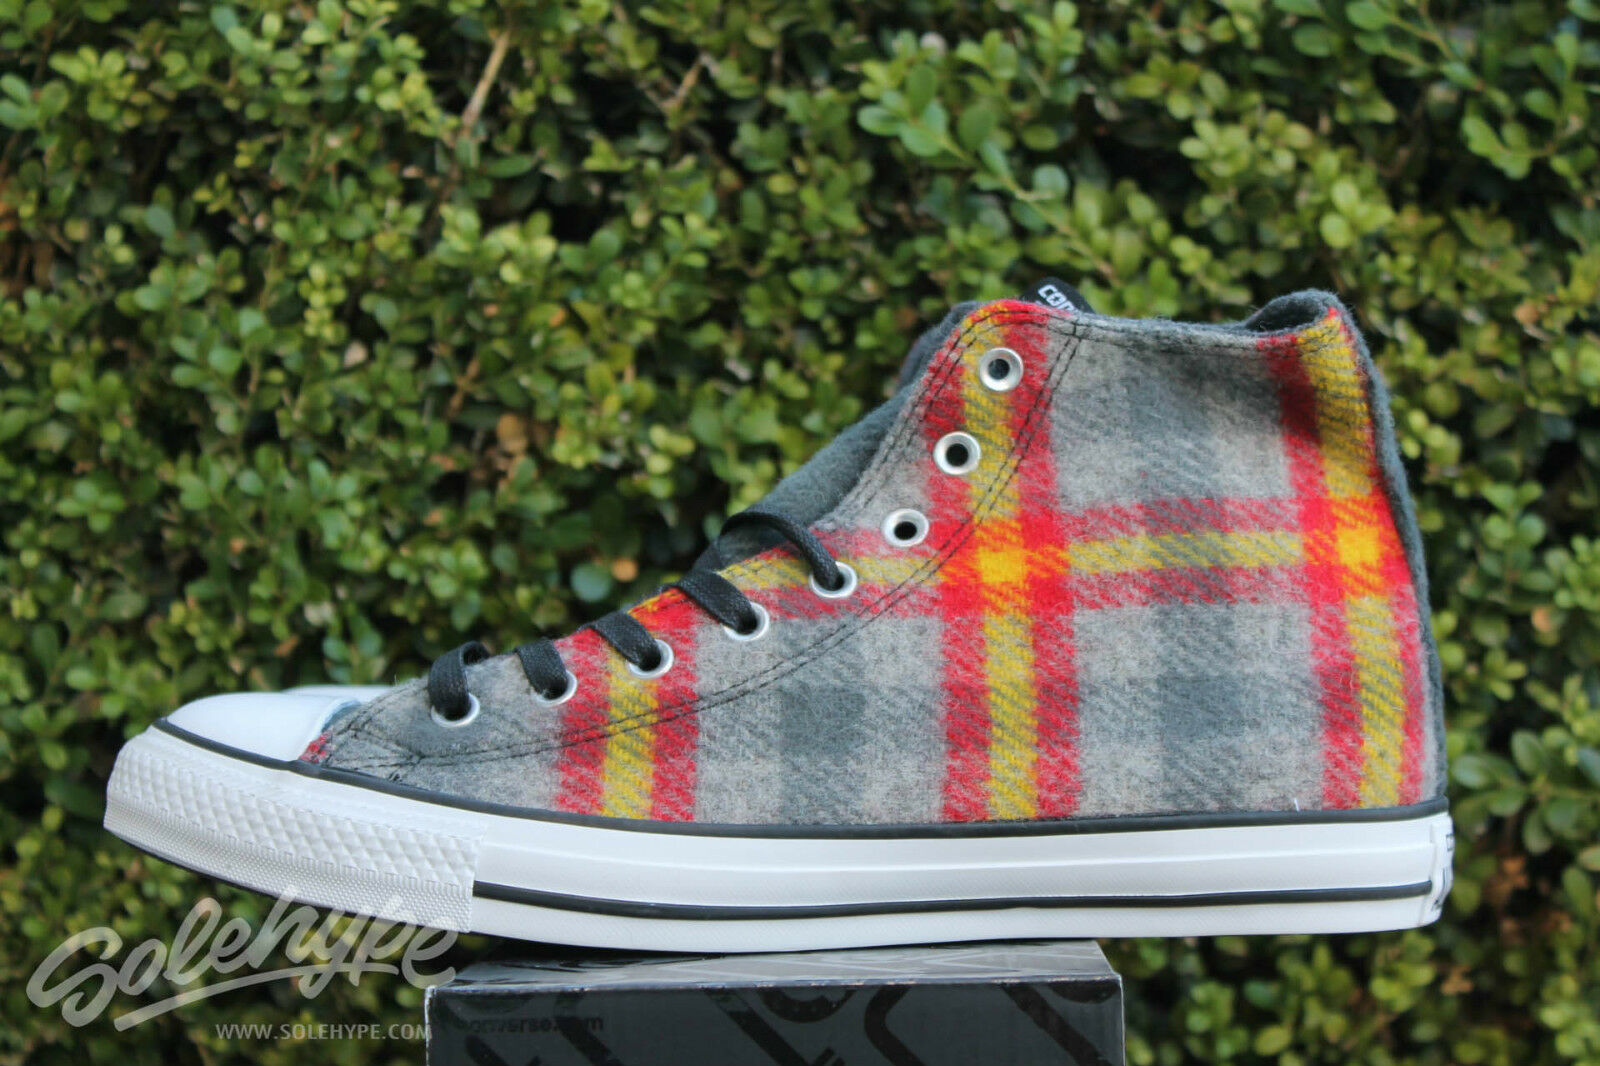 CONVERSE ALL STAR CHUCK TAYLOR 8 WOOLRICH CT HI SZ 8 TAYLOR THUNDER YELLOW RED 149456C 1a99ae